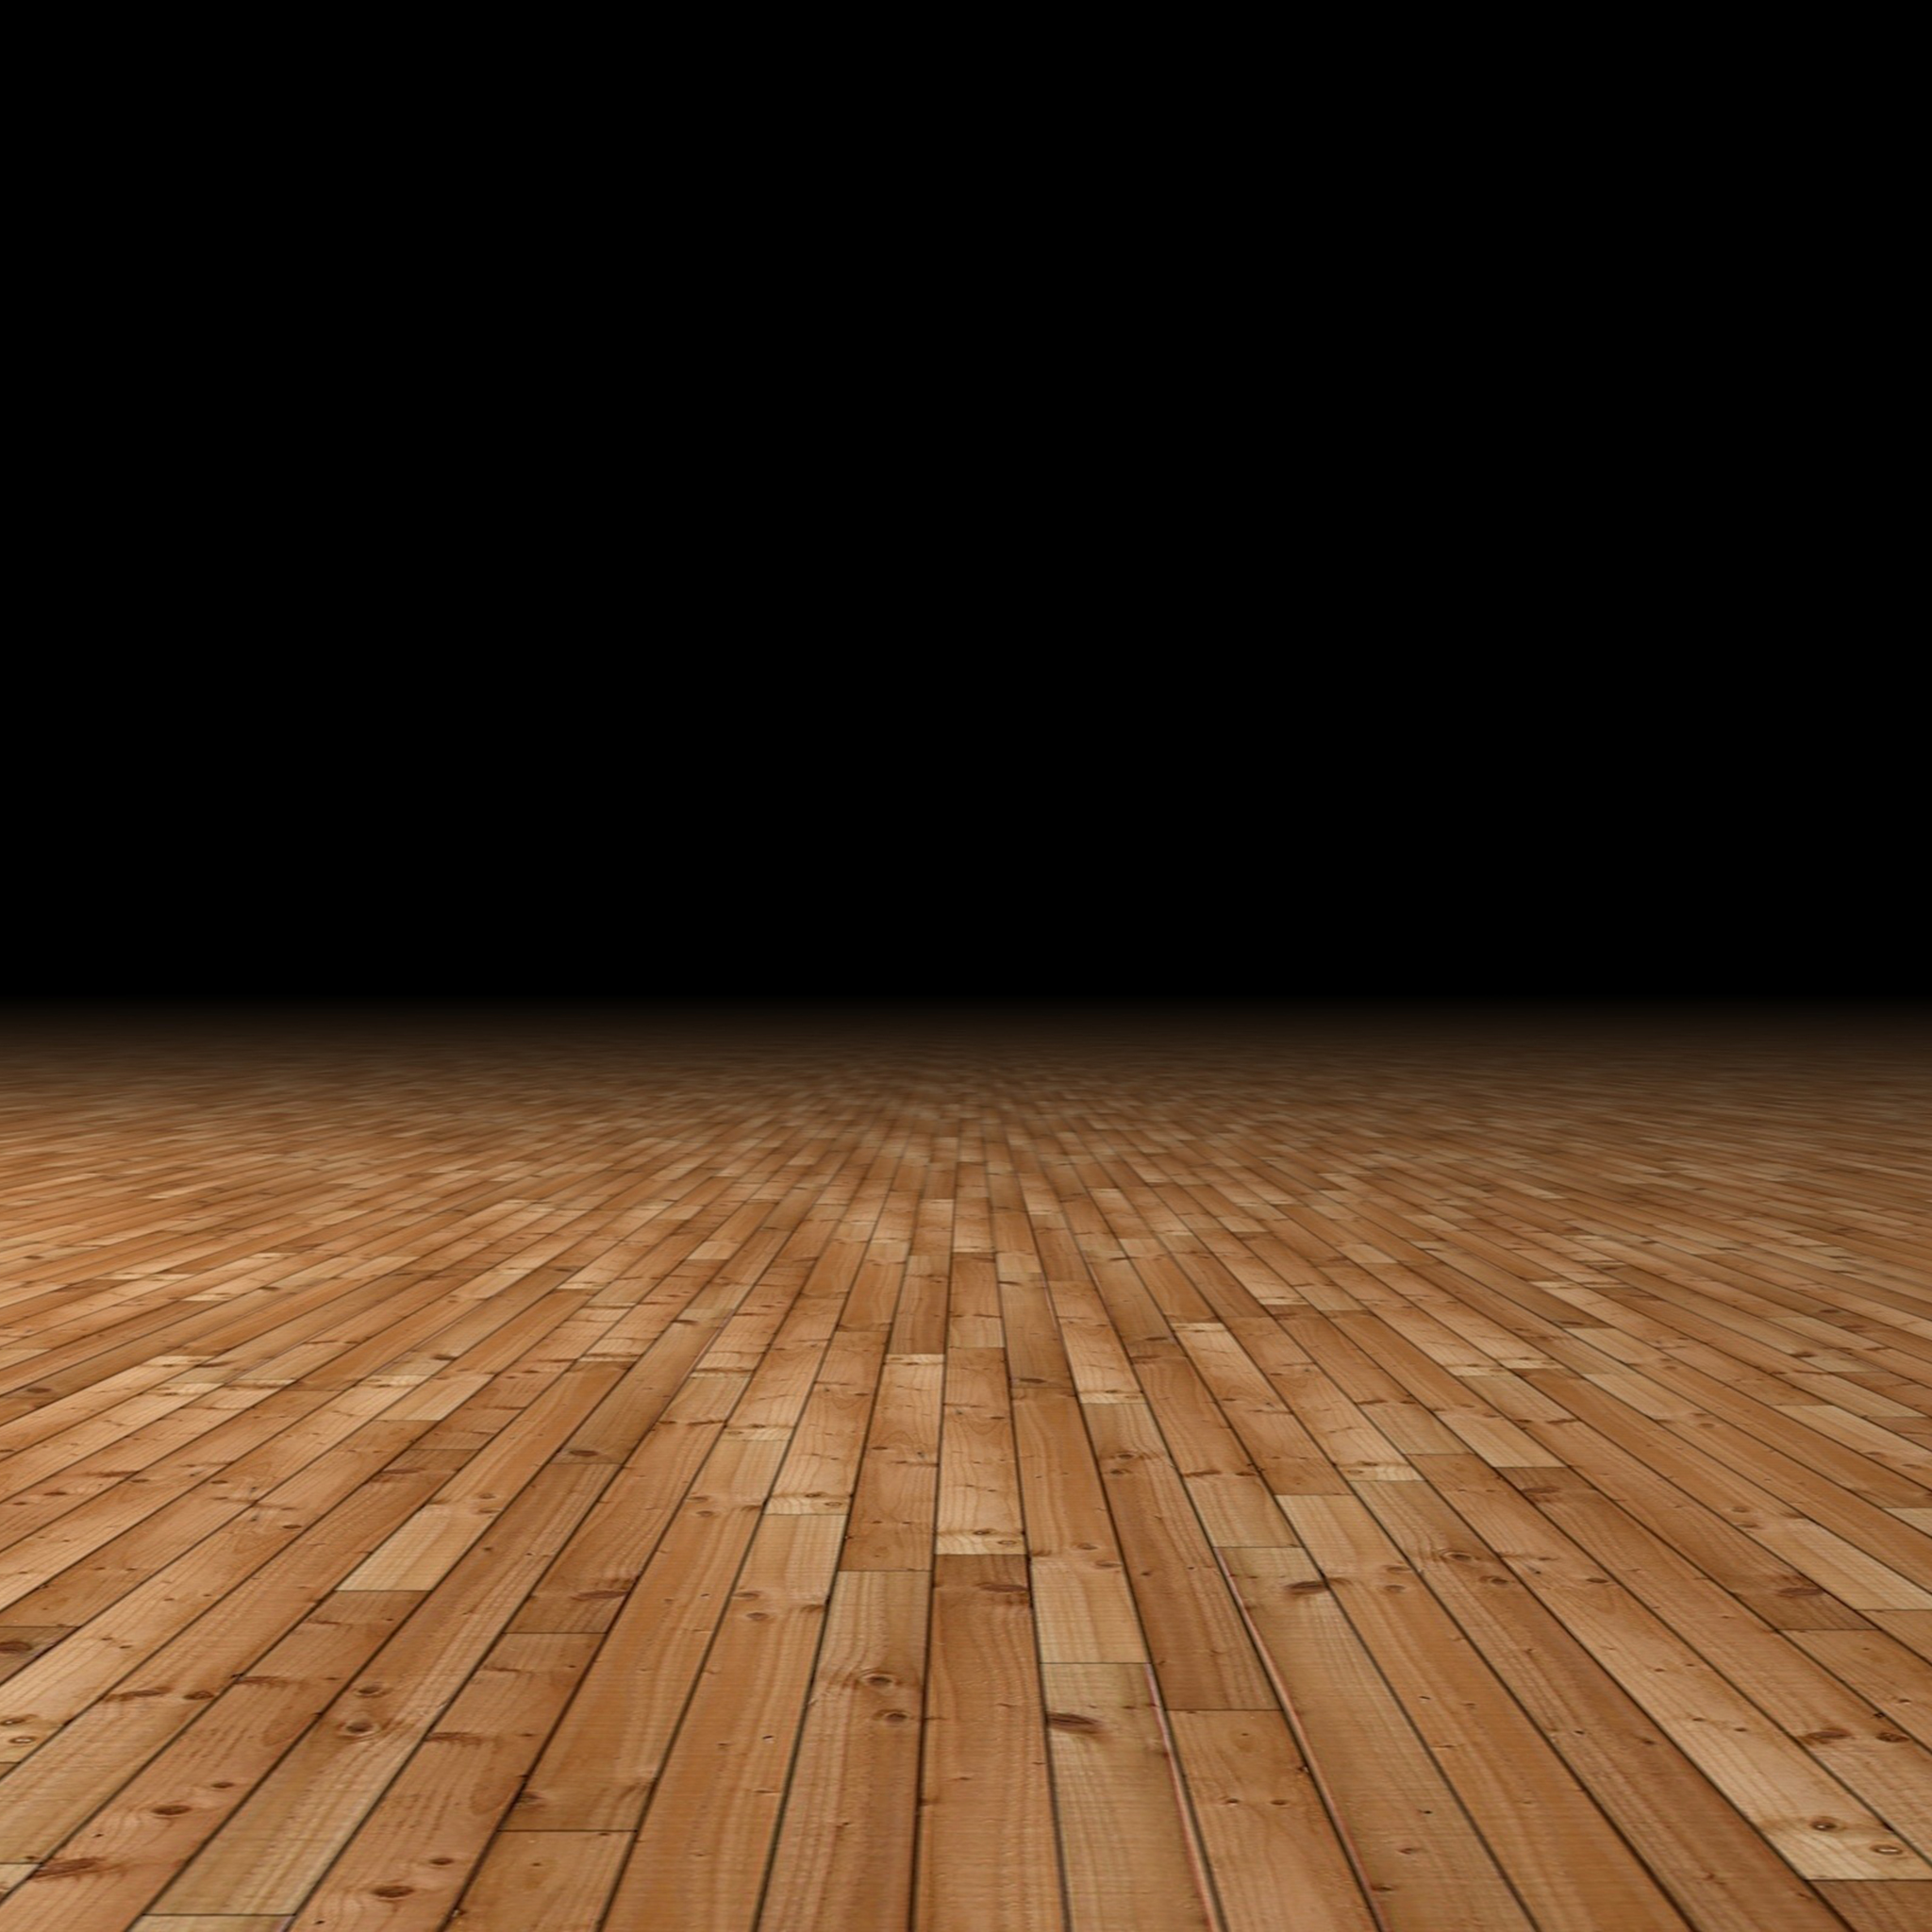 Hardwood-3Wallpapers-iPad-Retina